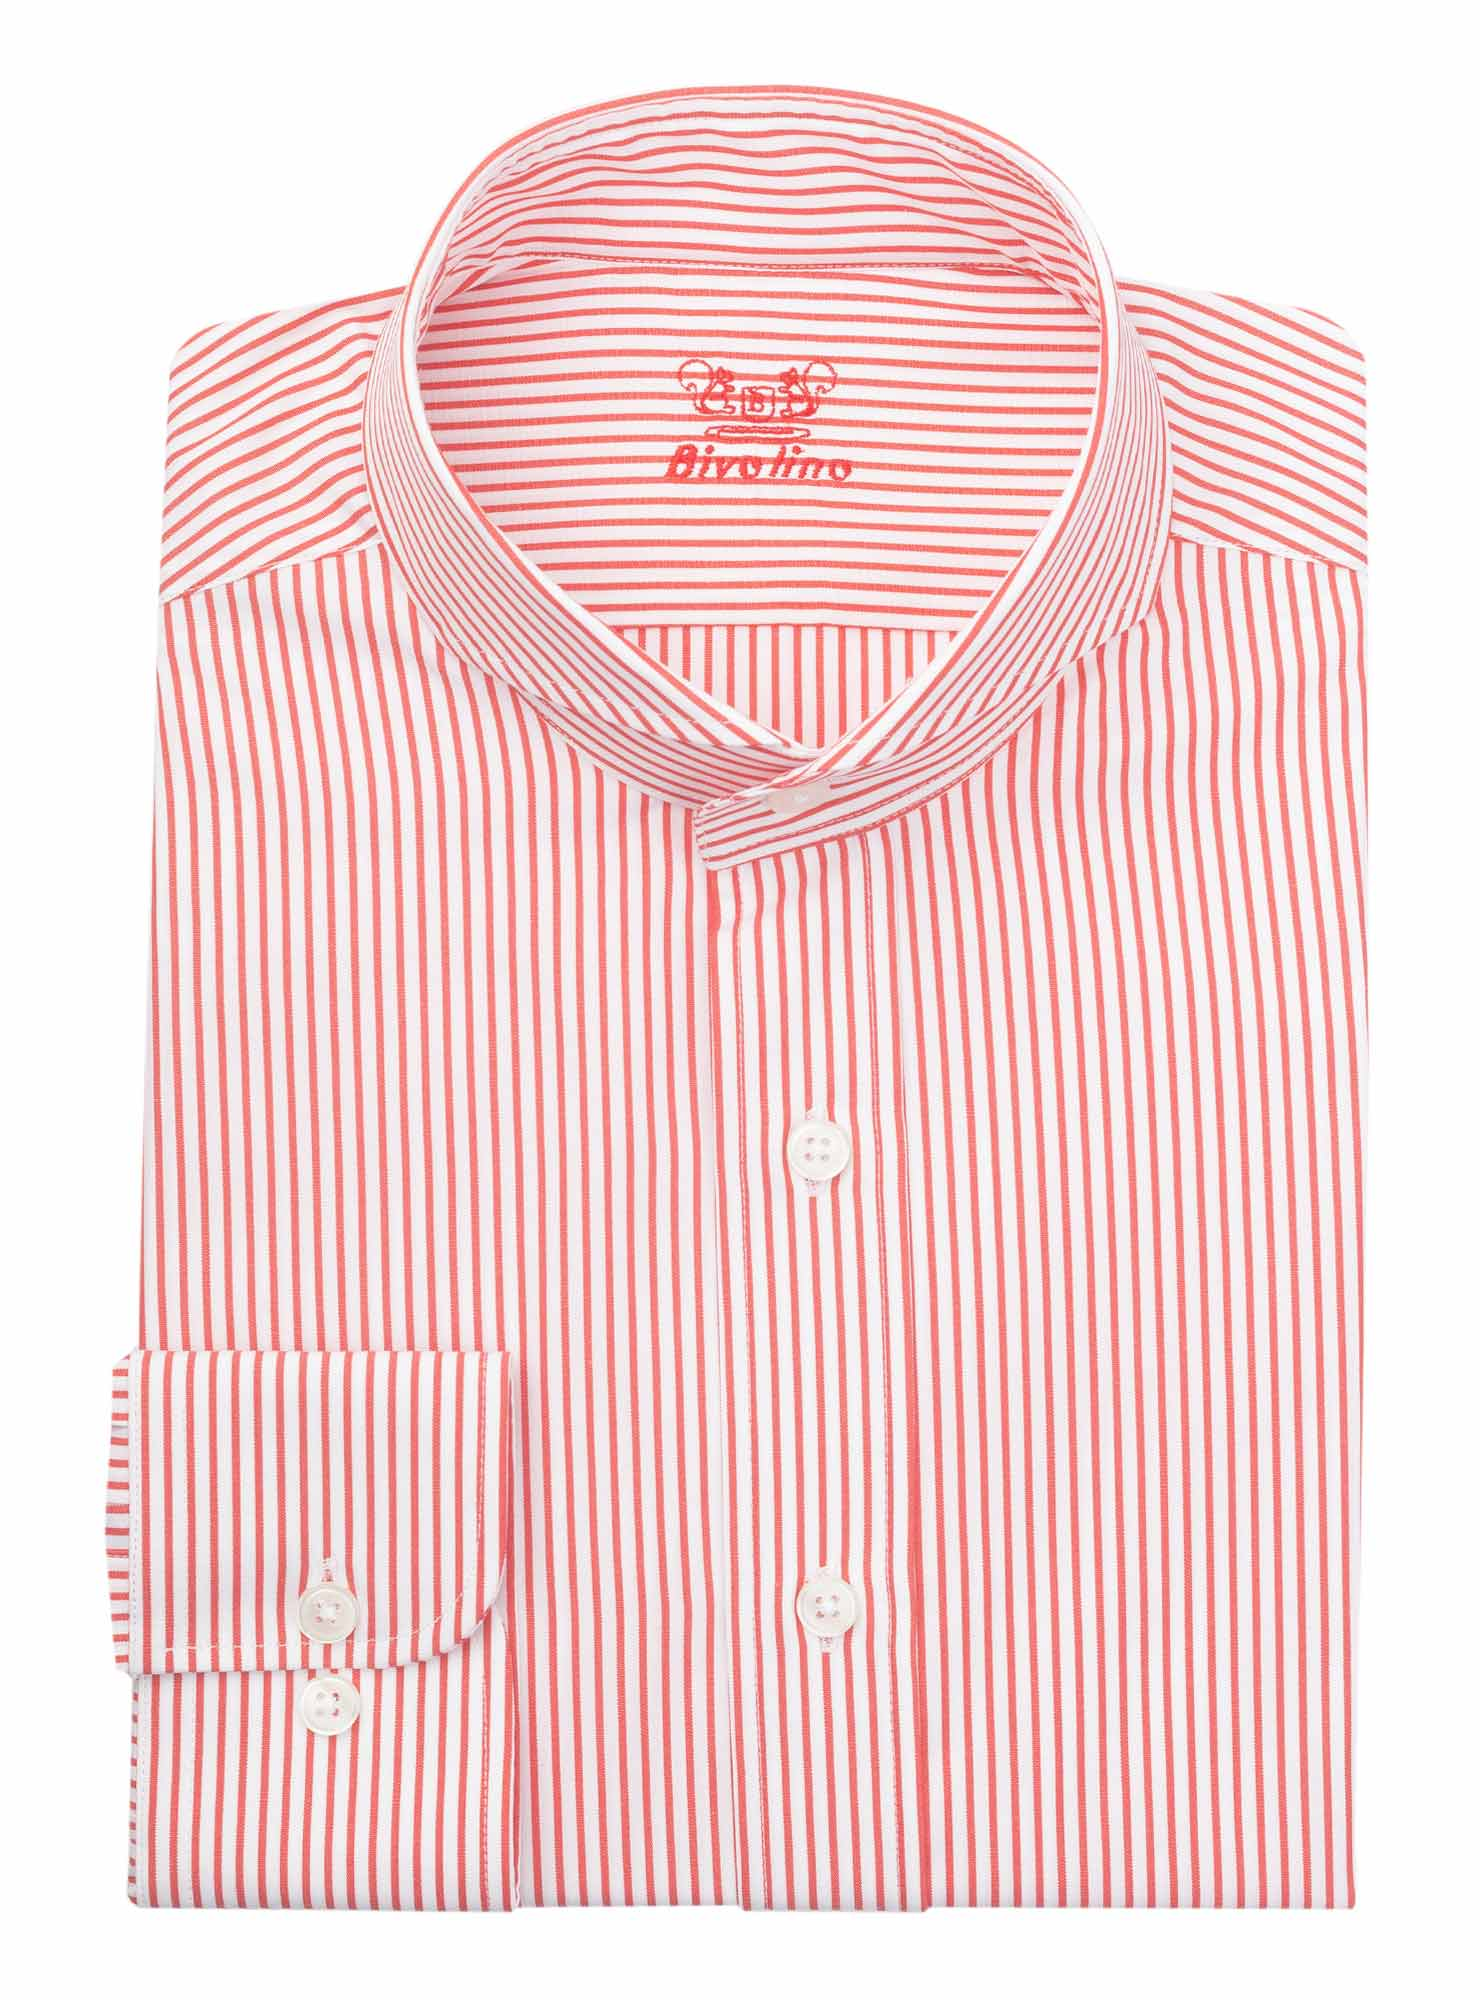 ENNA - chemise homme Popeline à rayures rouge bengale - WINDY 3